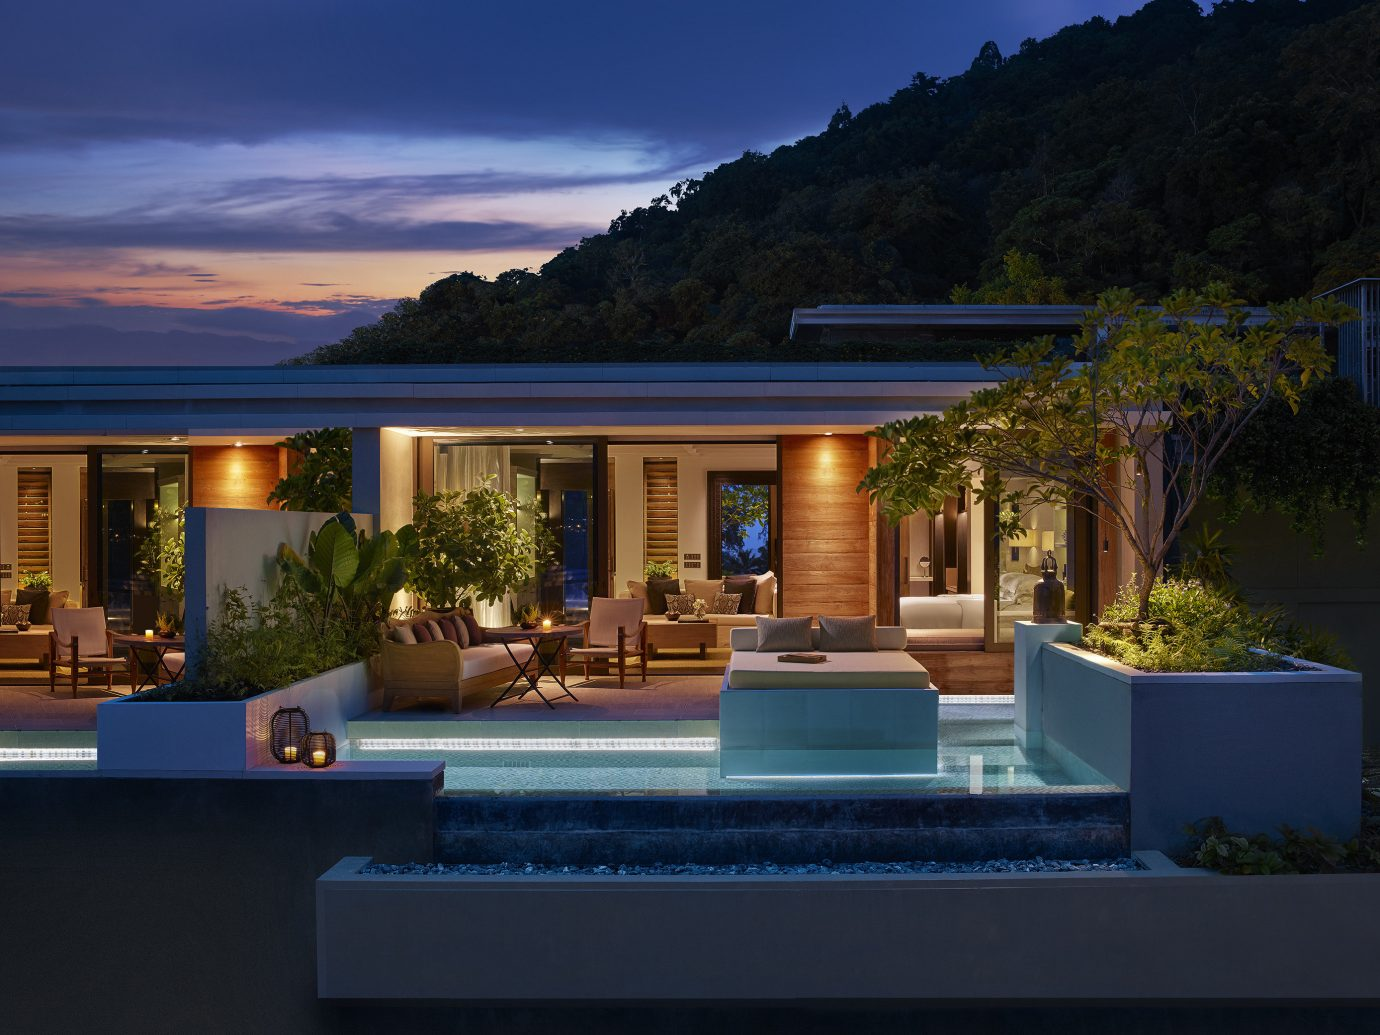 sky outdoor home property estate house swimming pool Architecture real estate lighting Villa residential area landscape lighting backyard Resort reflection facade window cottage elevation landscaping roof interior design outdoor structure evening landscape